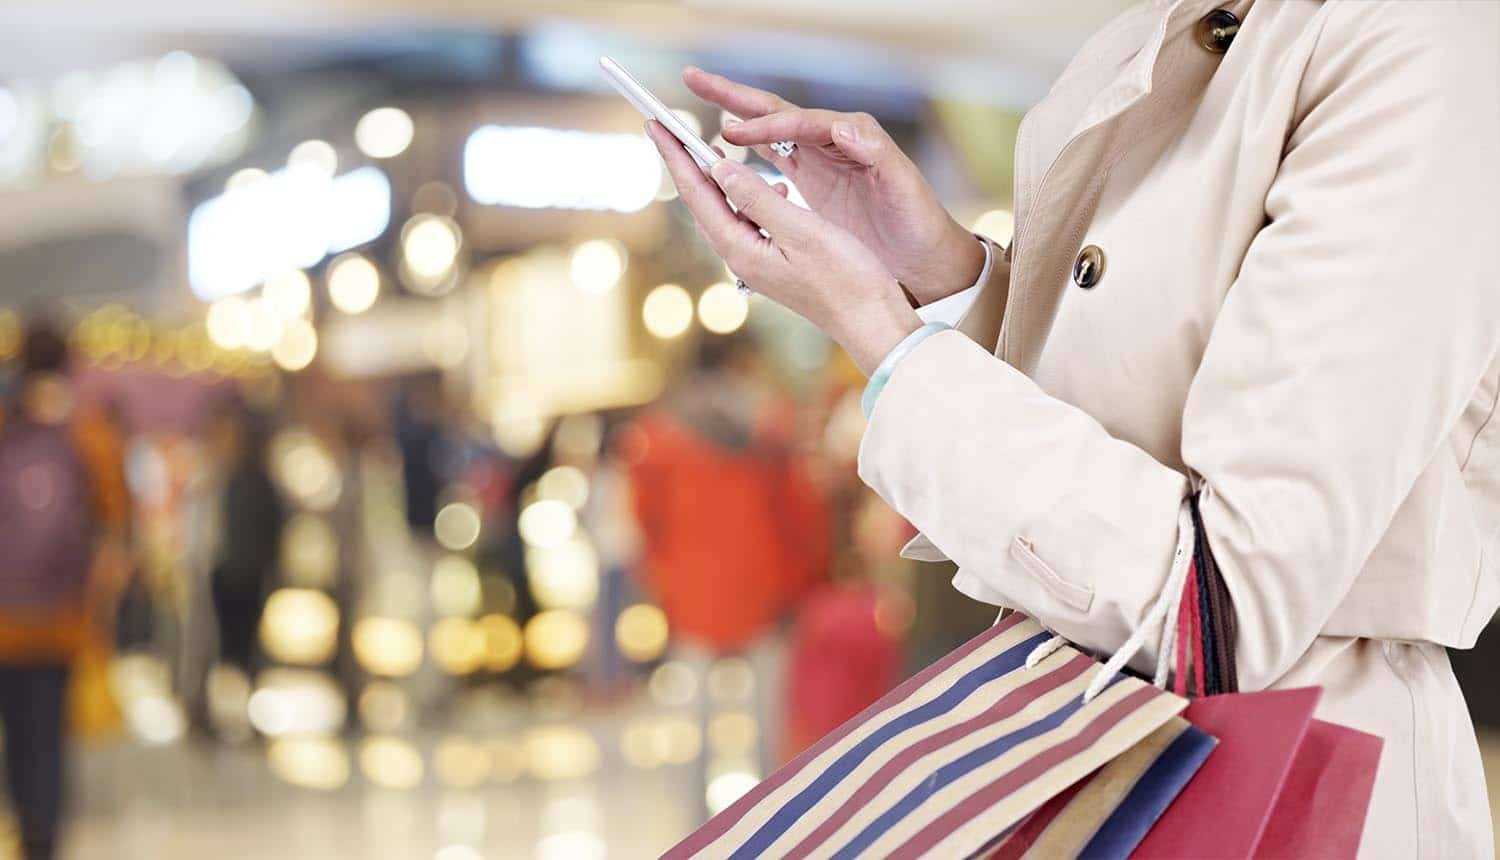 Image of female shopper using mobile phone signifying how retailers can boost consumer trust by offering identity protection for holiday shoppers